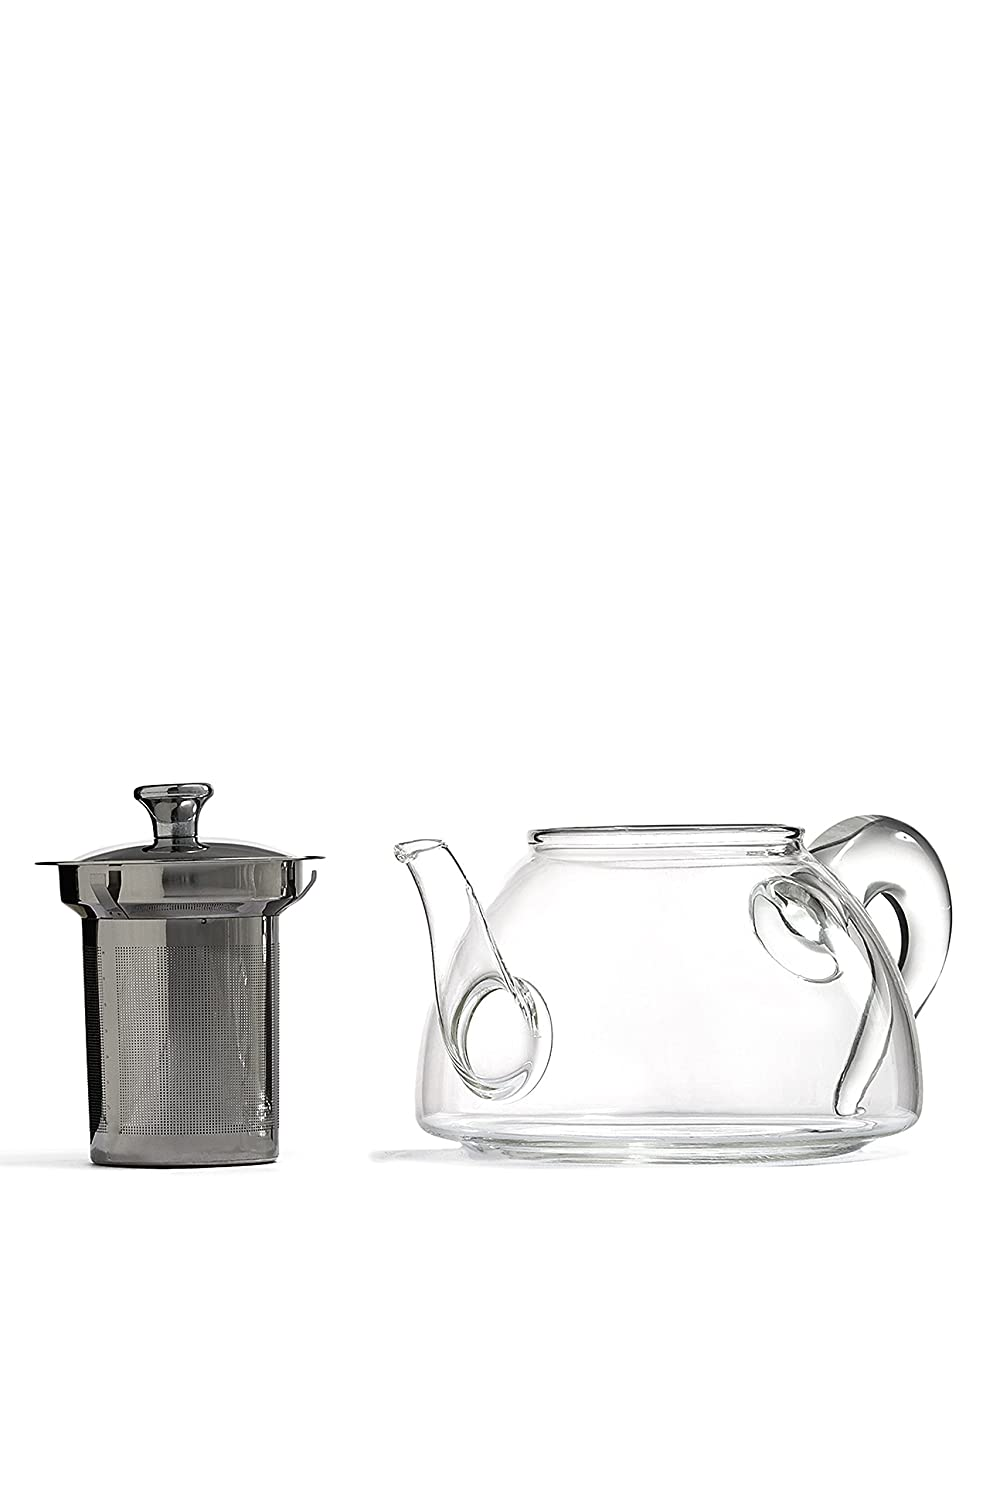 34 Fl Oz Glass Tea Pot With Stainless Steel Infuser Fine Filter Loose Leaf Teapot Clear